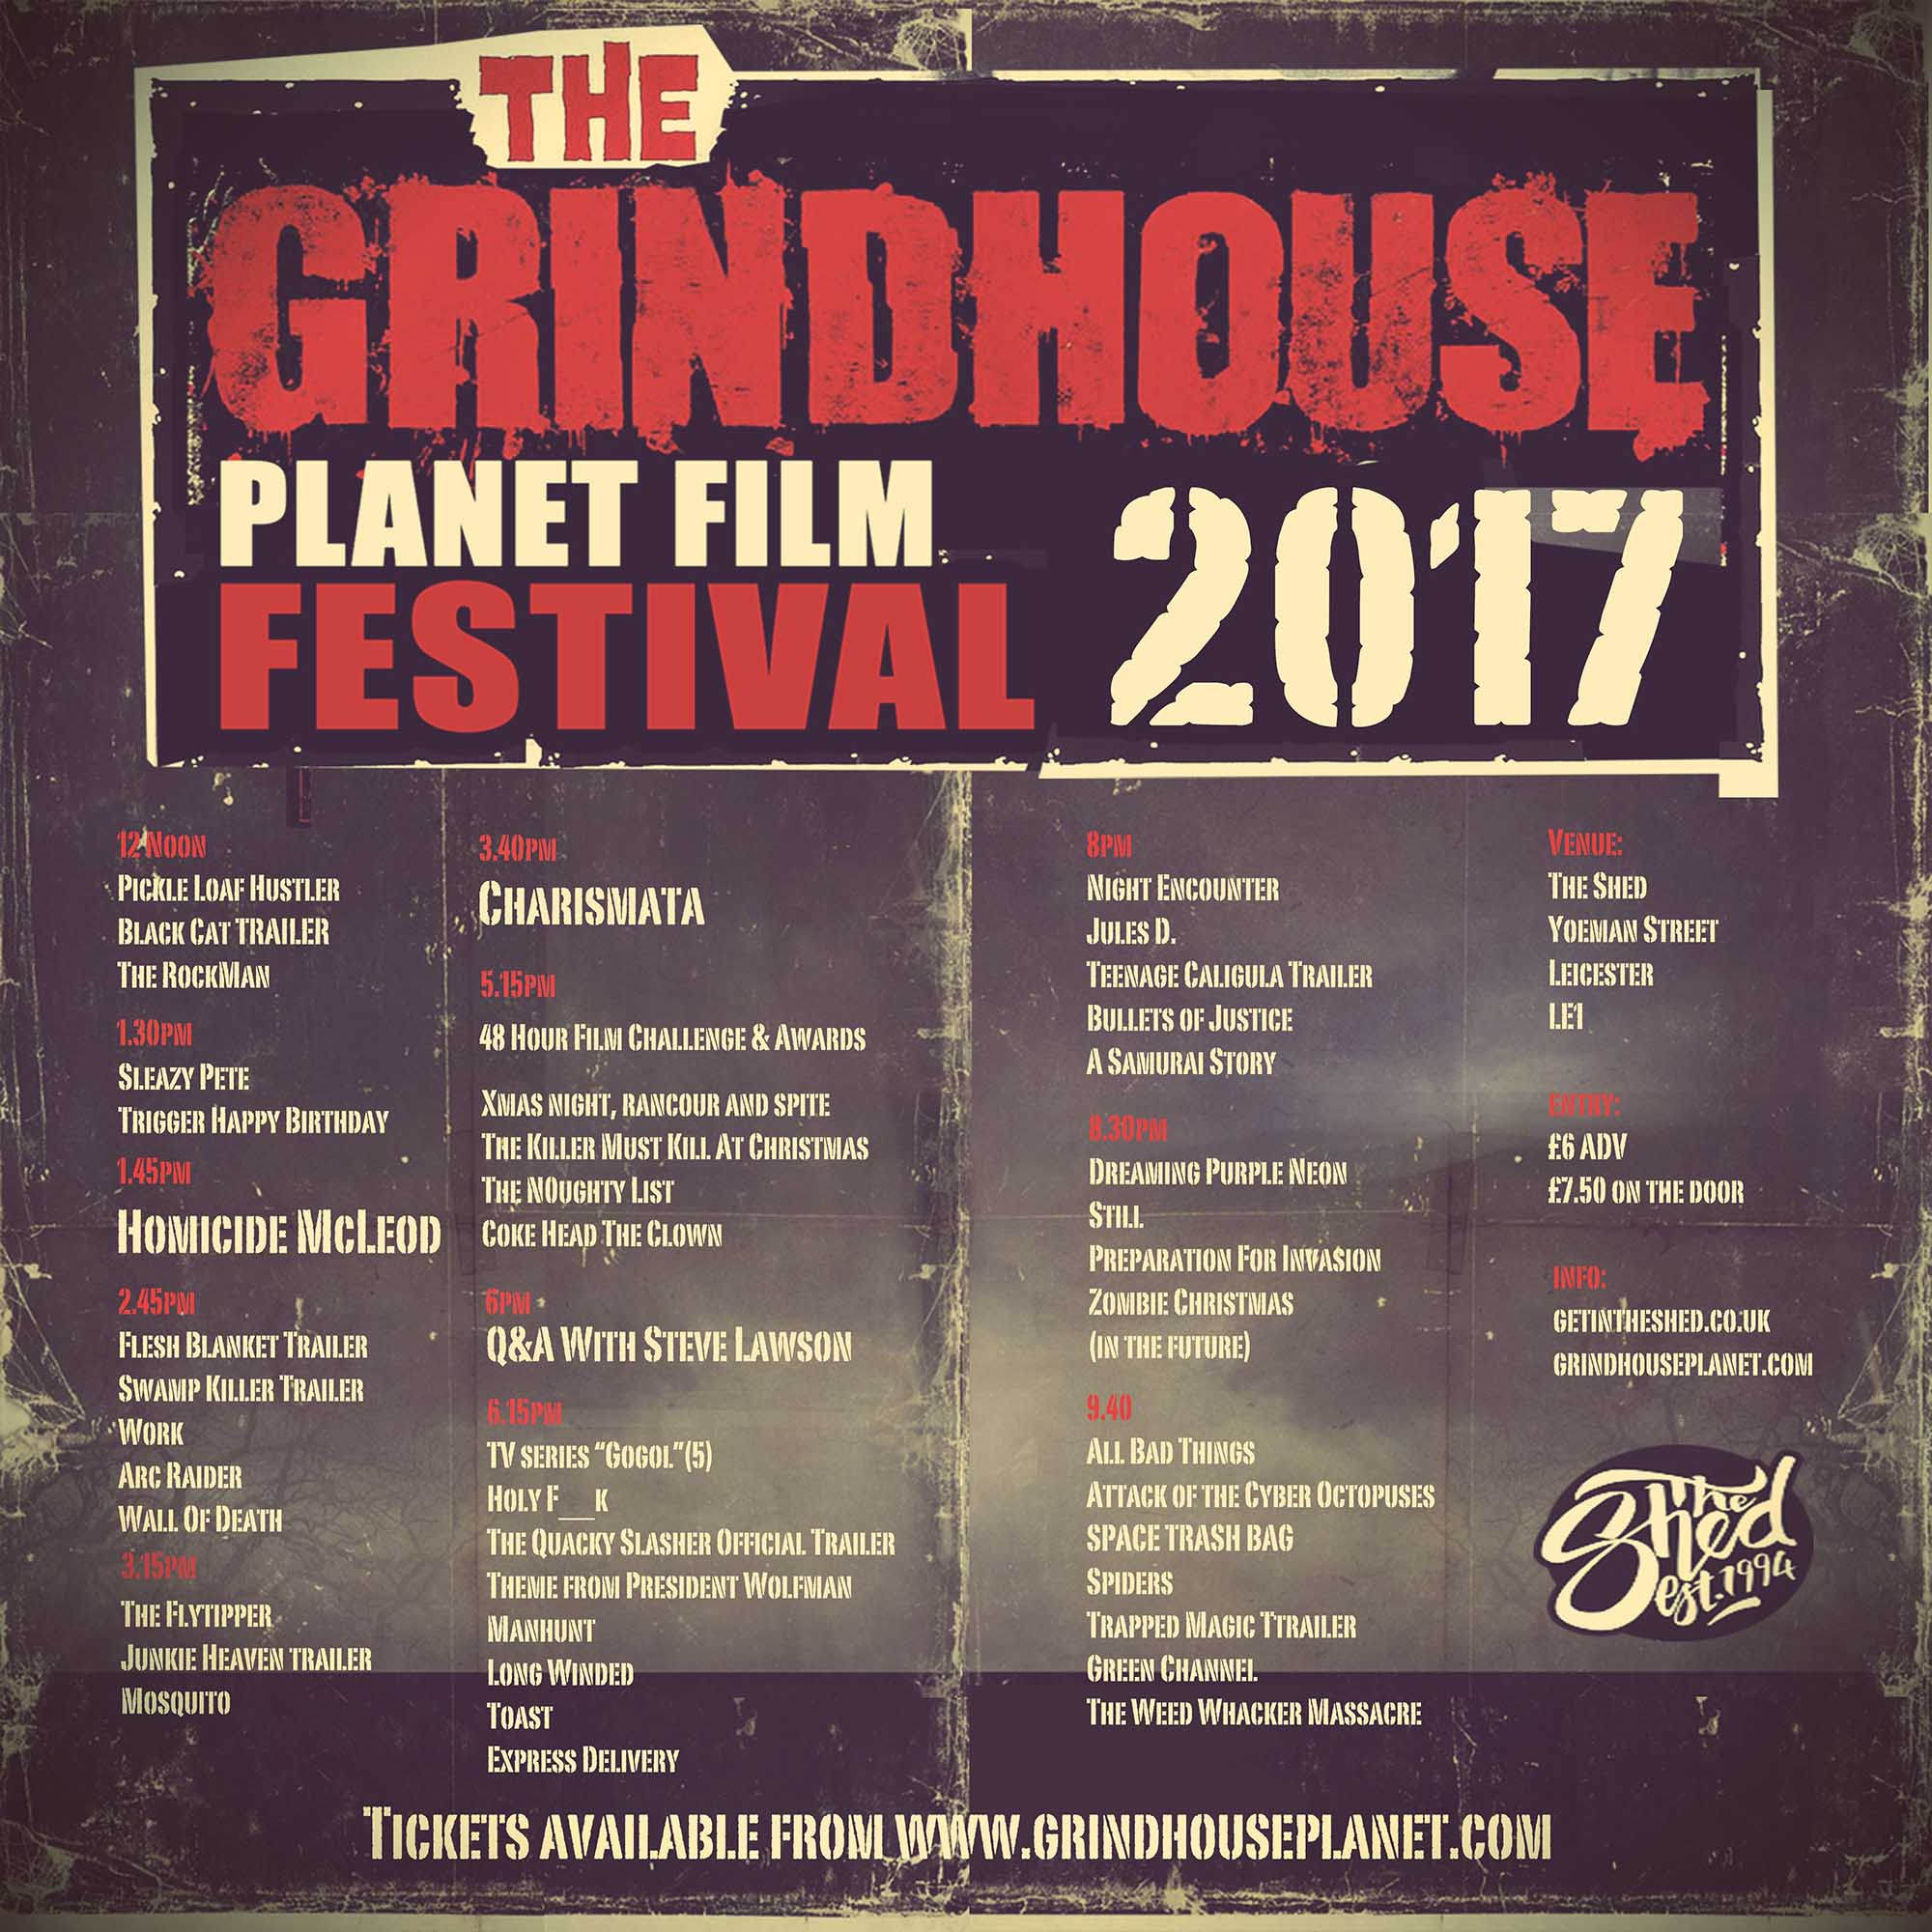 grindhouseprogramme2017 copy